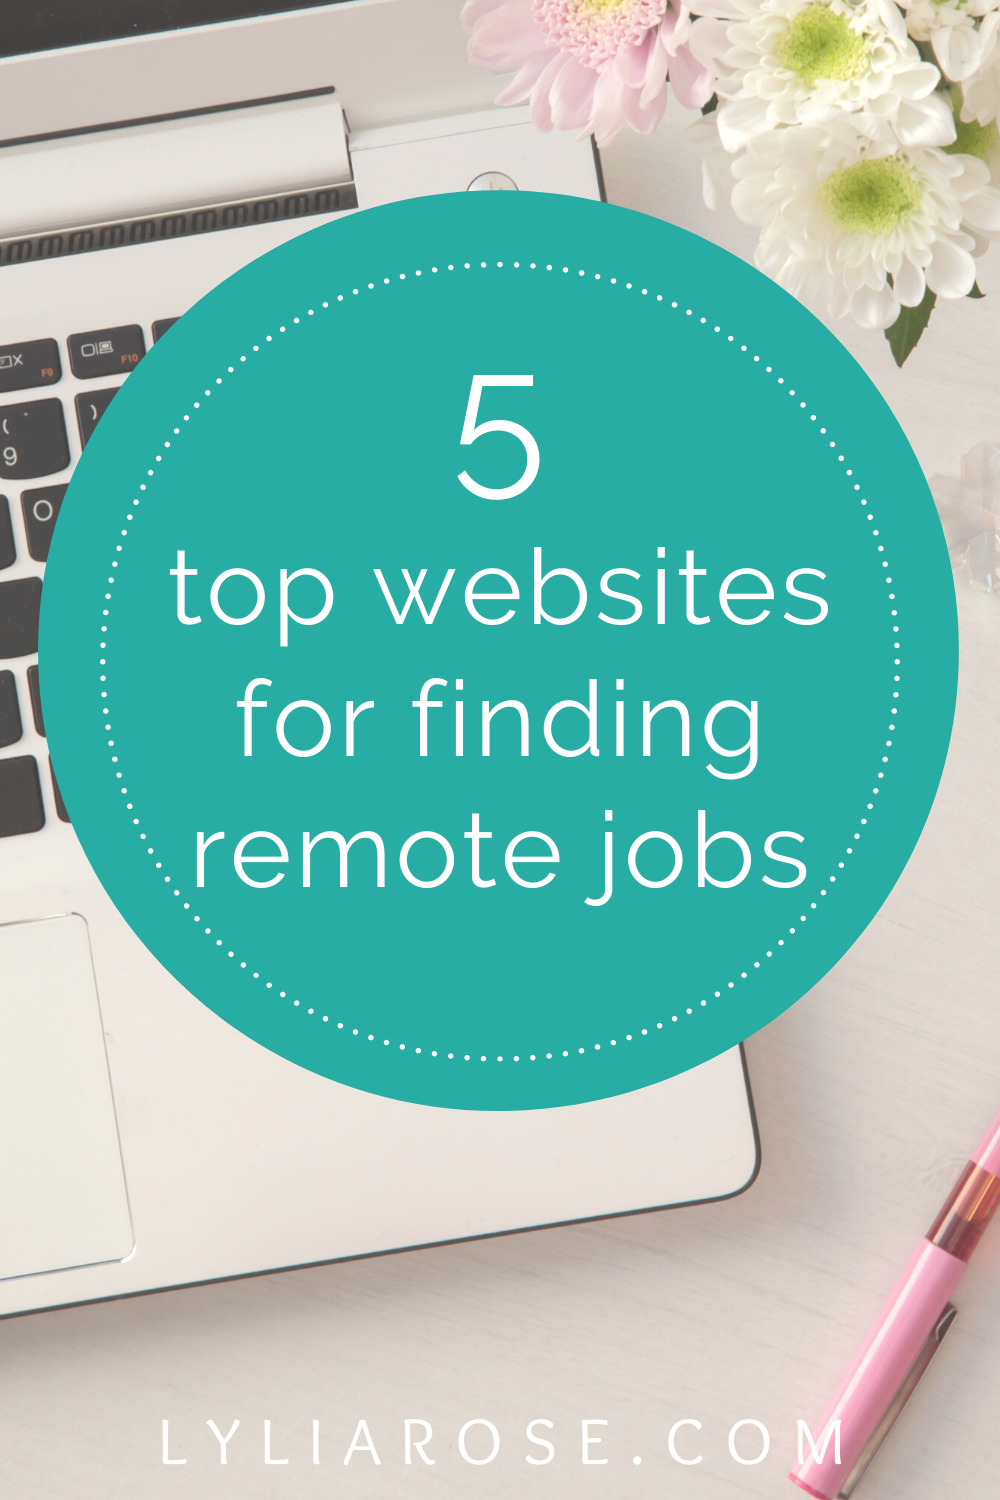 5 top websites for finding remote jobs (1)